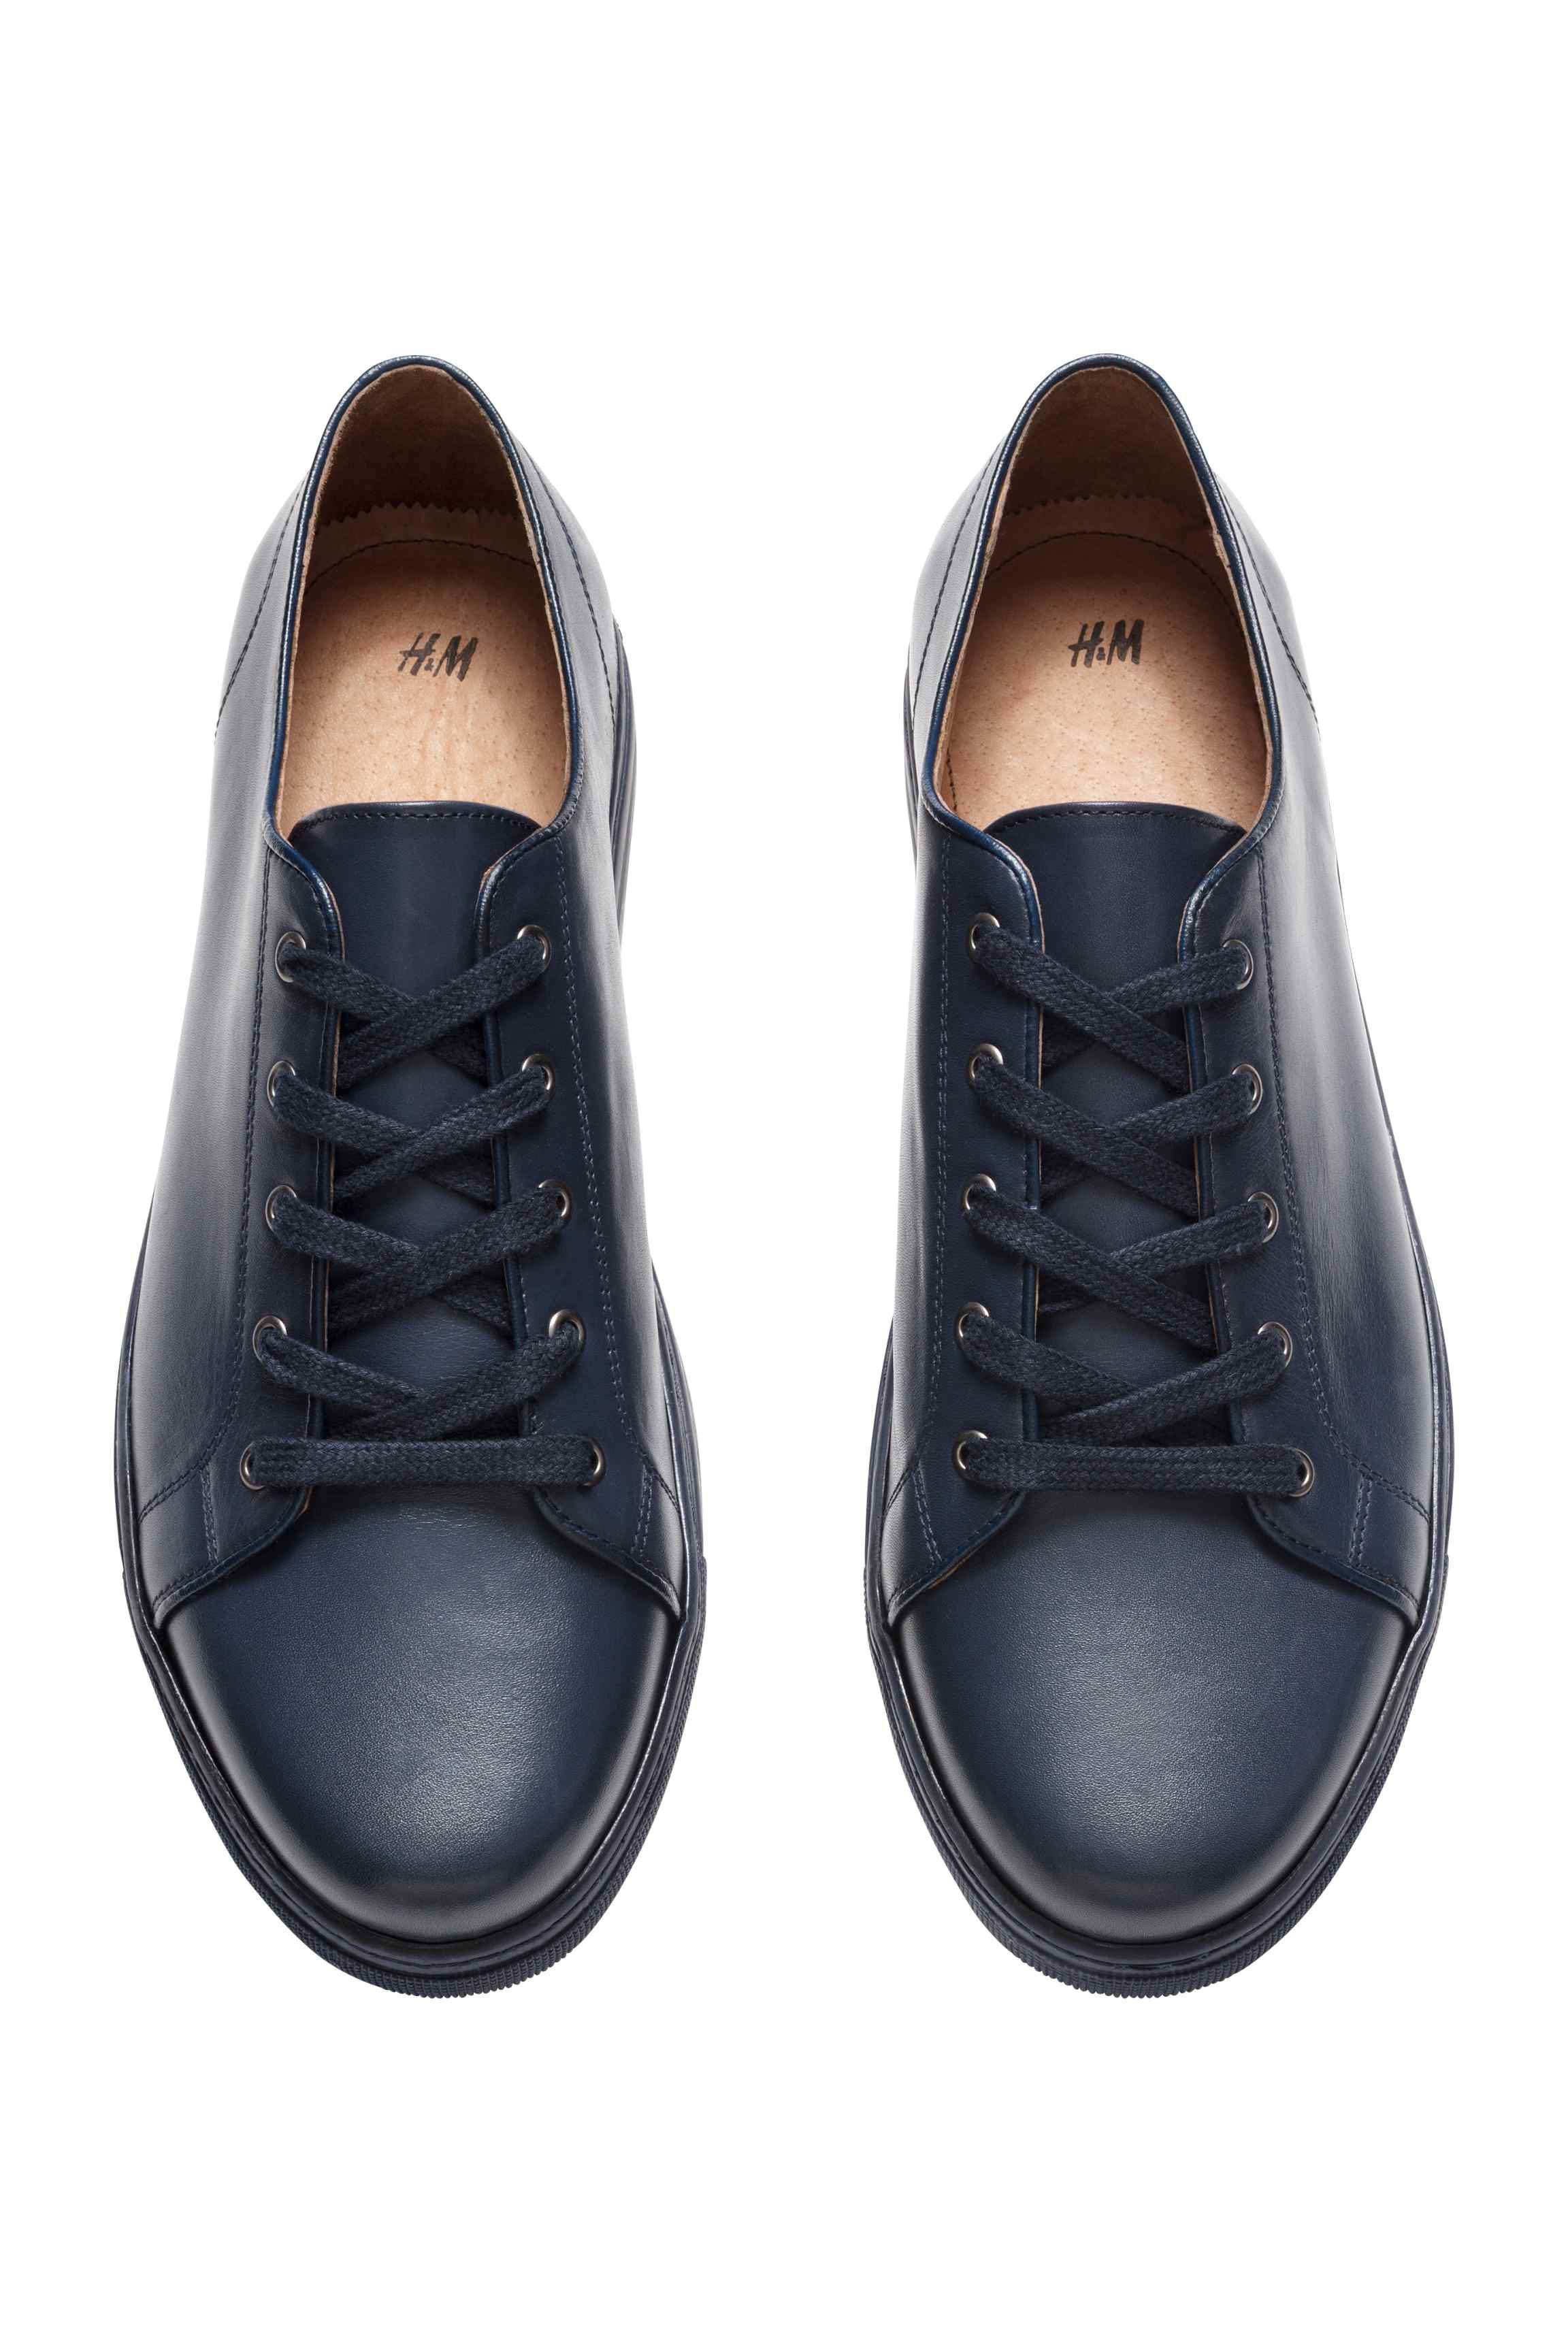 Buty Sportowe Ze Skory Sneakers Leather Sneakers Genuine Leather Shoes